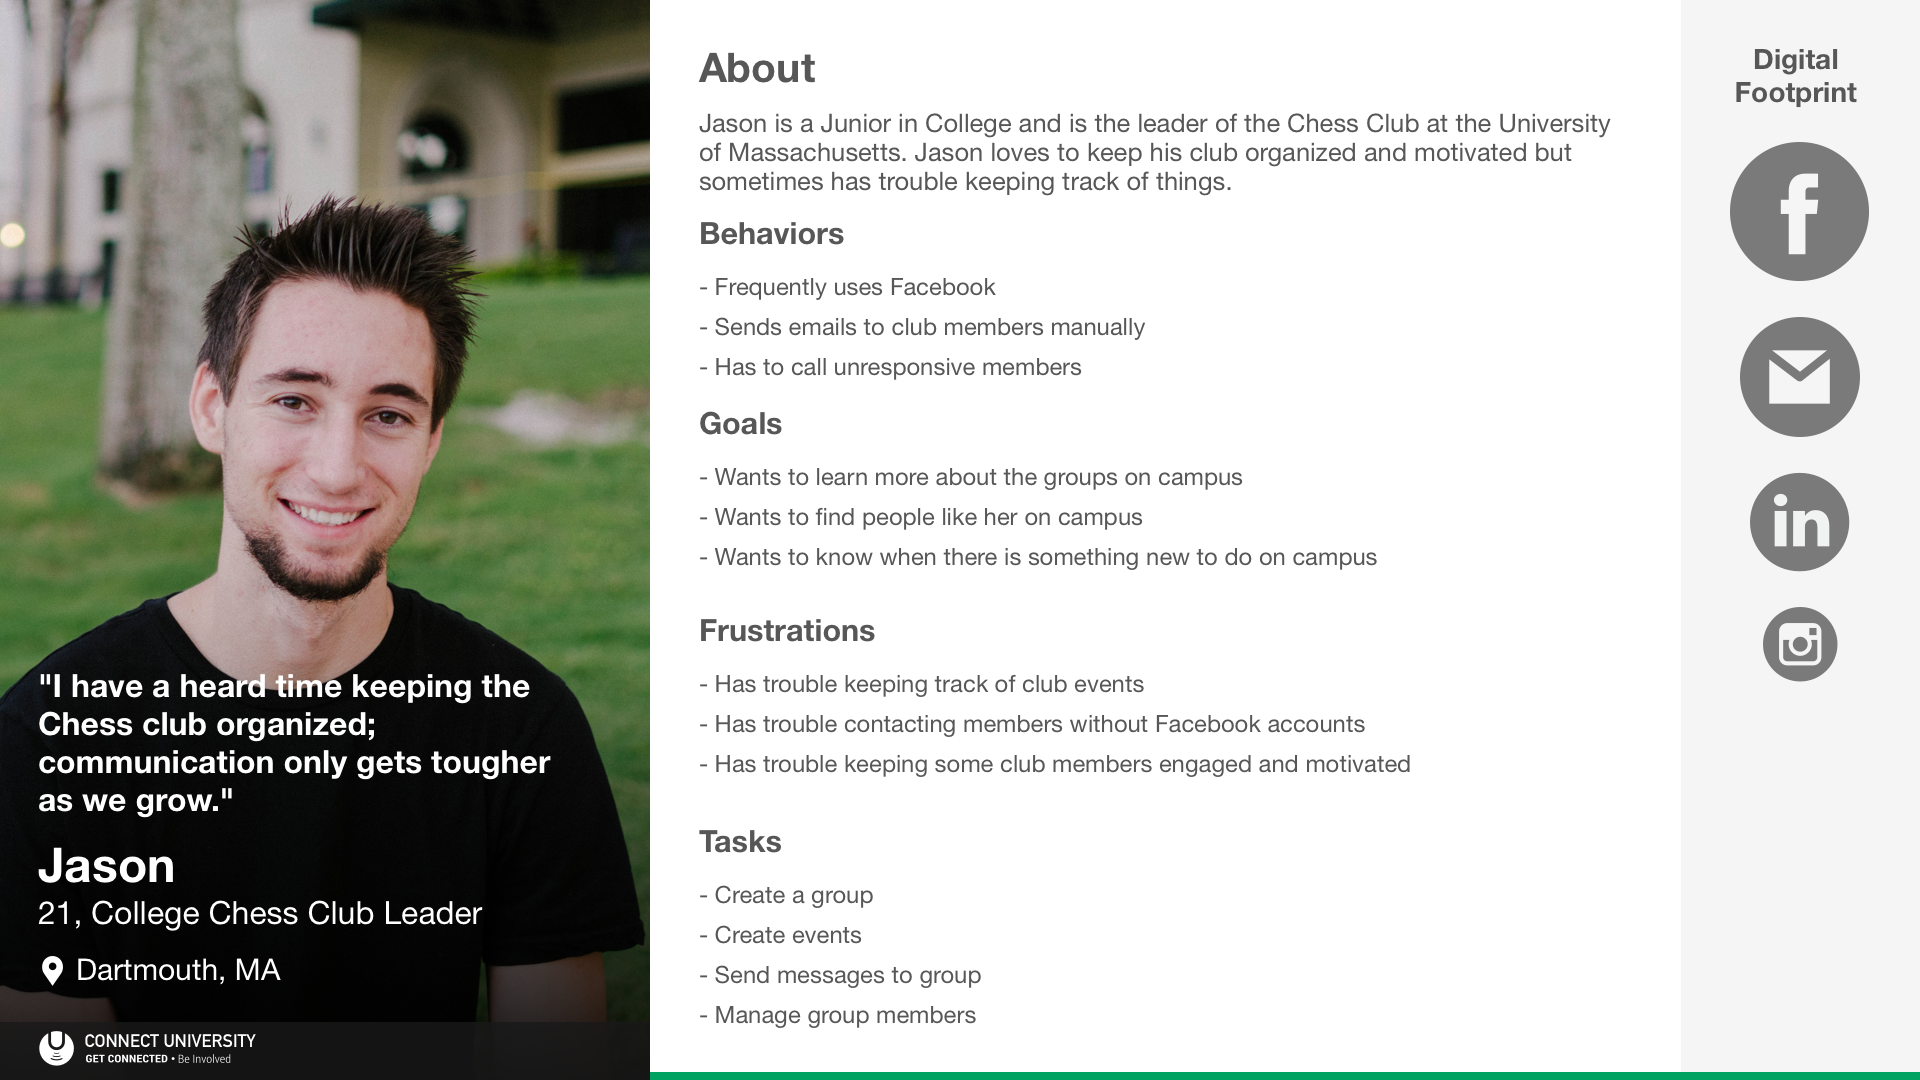 Connect University Persona - College Club Leader (Jason)